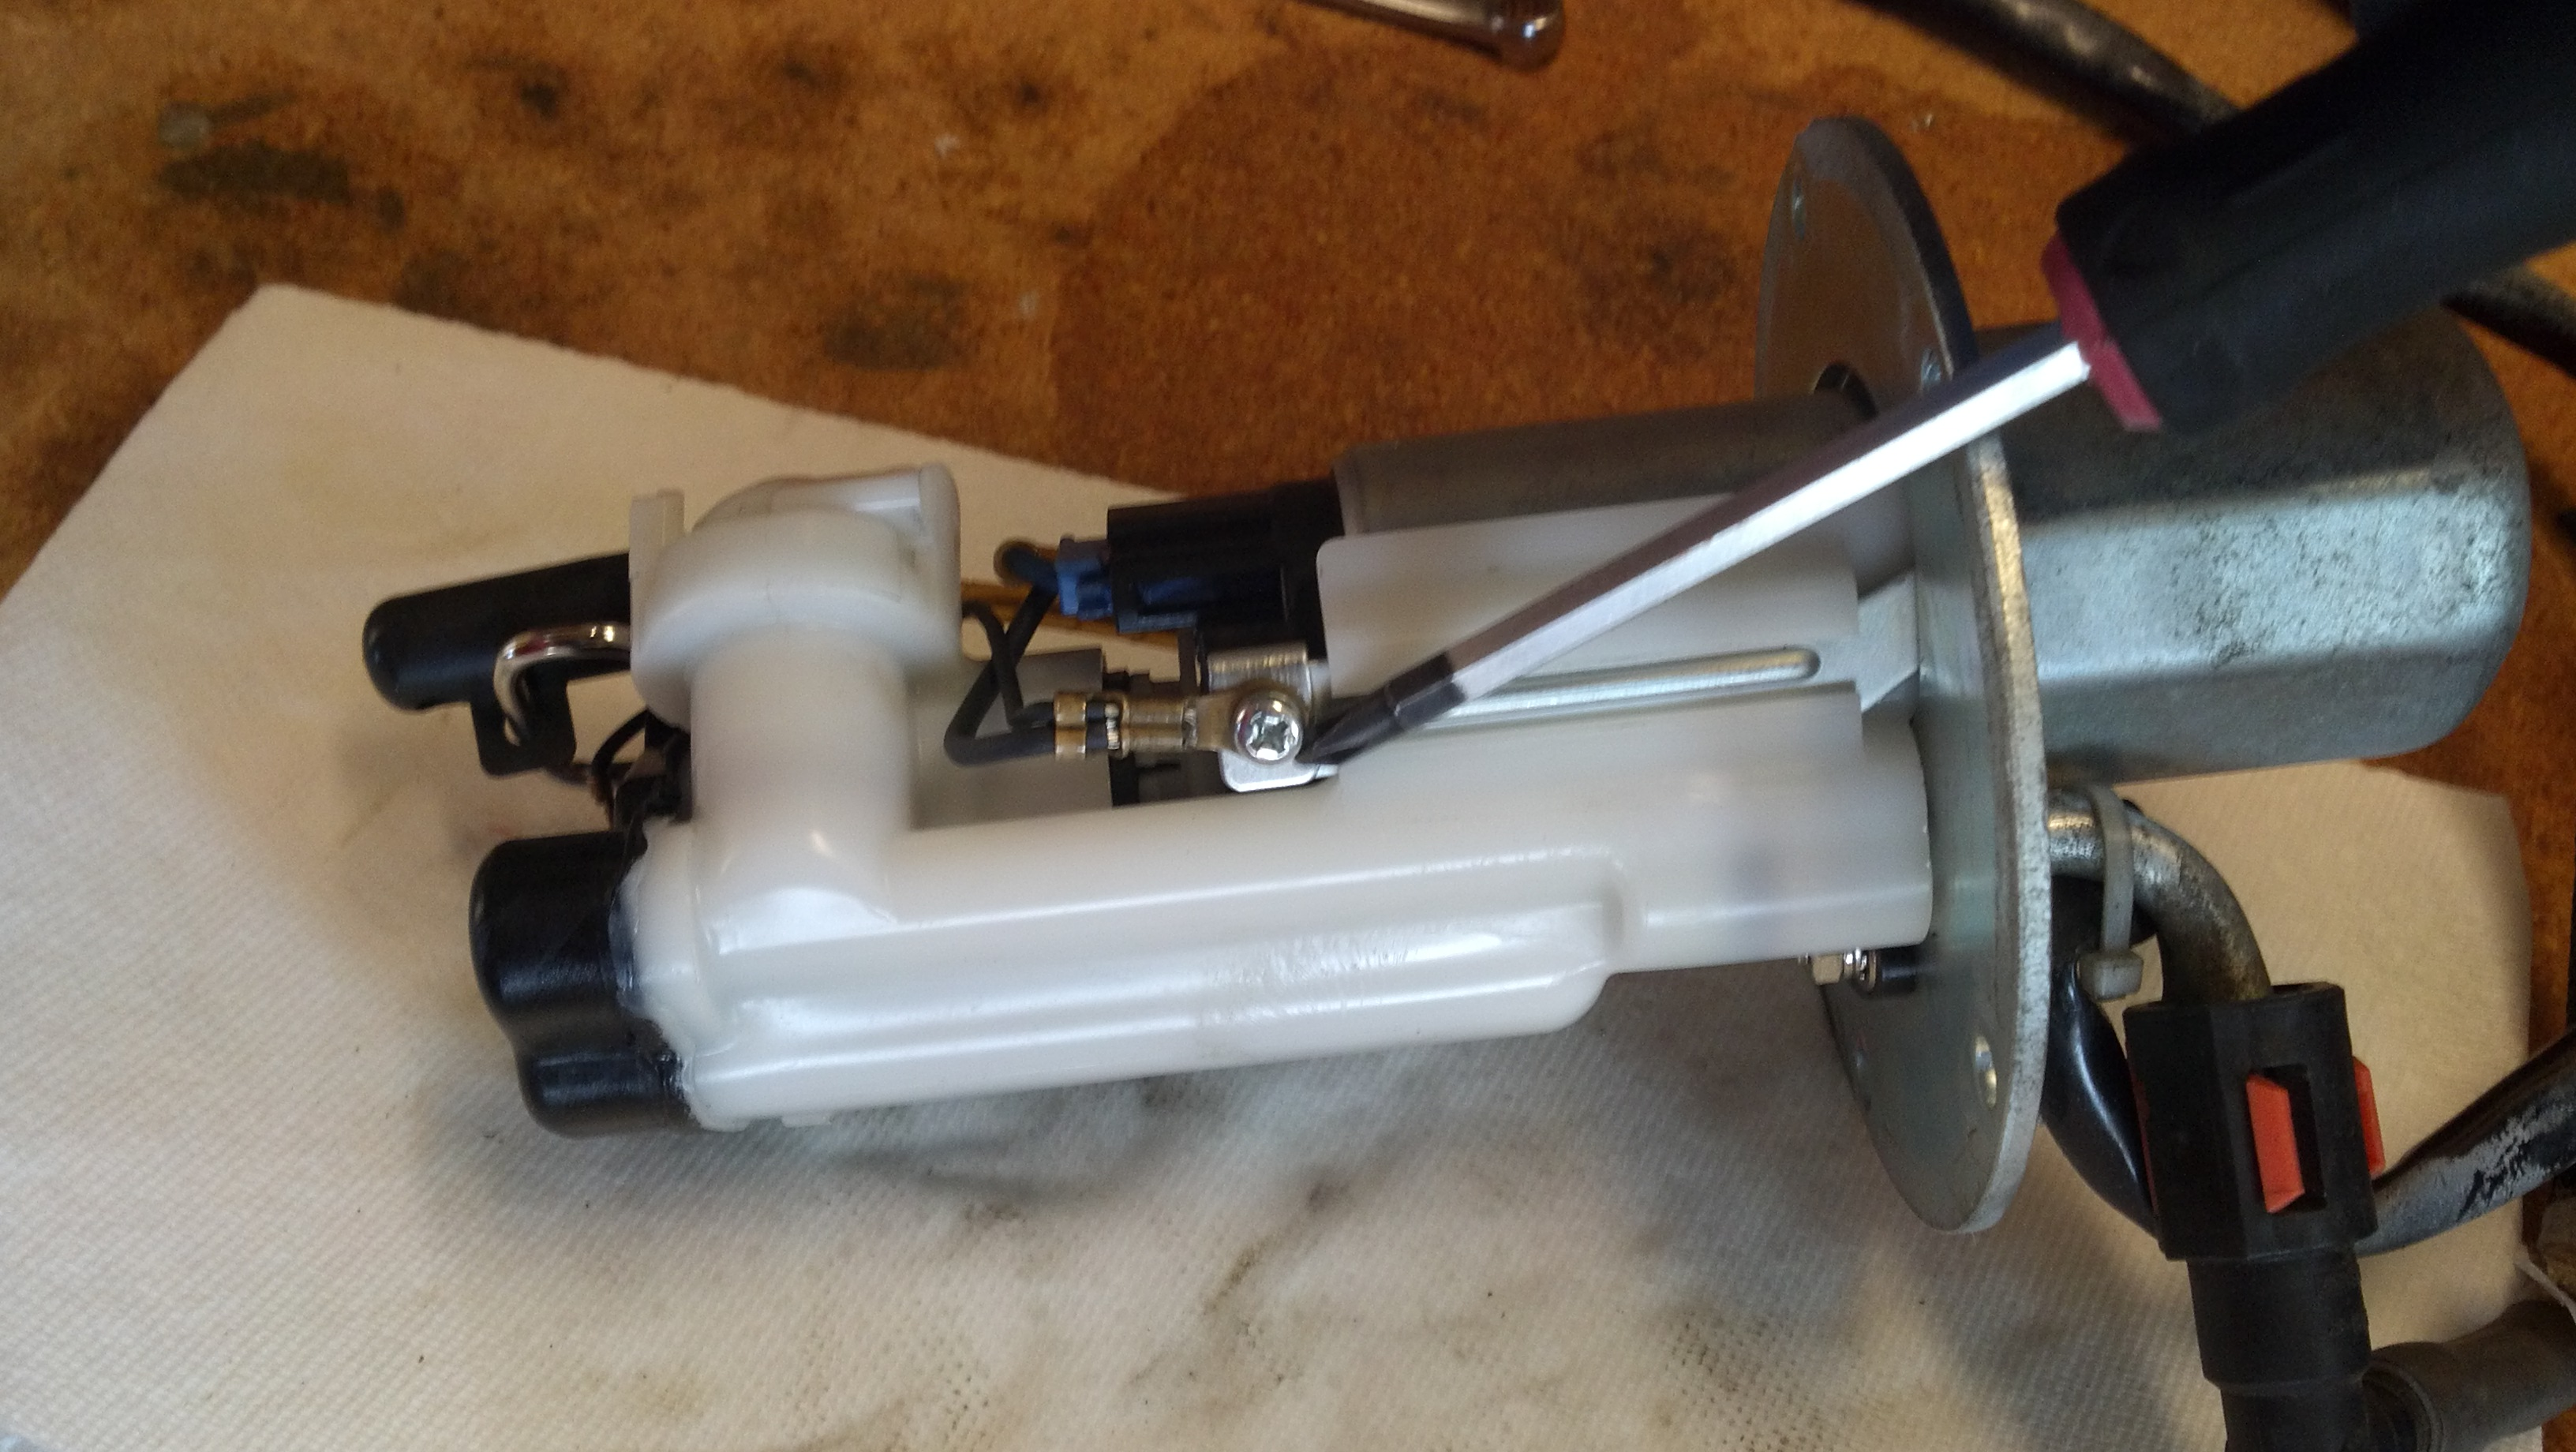 9298d1331444082 how service fuel pump strainer 2012 03 10_12 26 10_992 how to service fuel pump and strainer zx6r forum 2006 Kawasaki ZX636 Wiring-Diagram at suagrazia.org